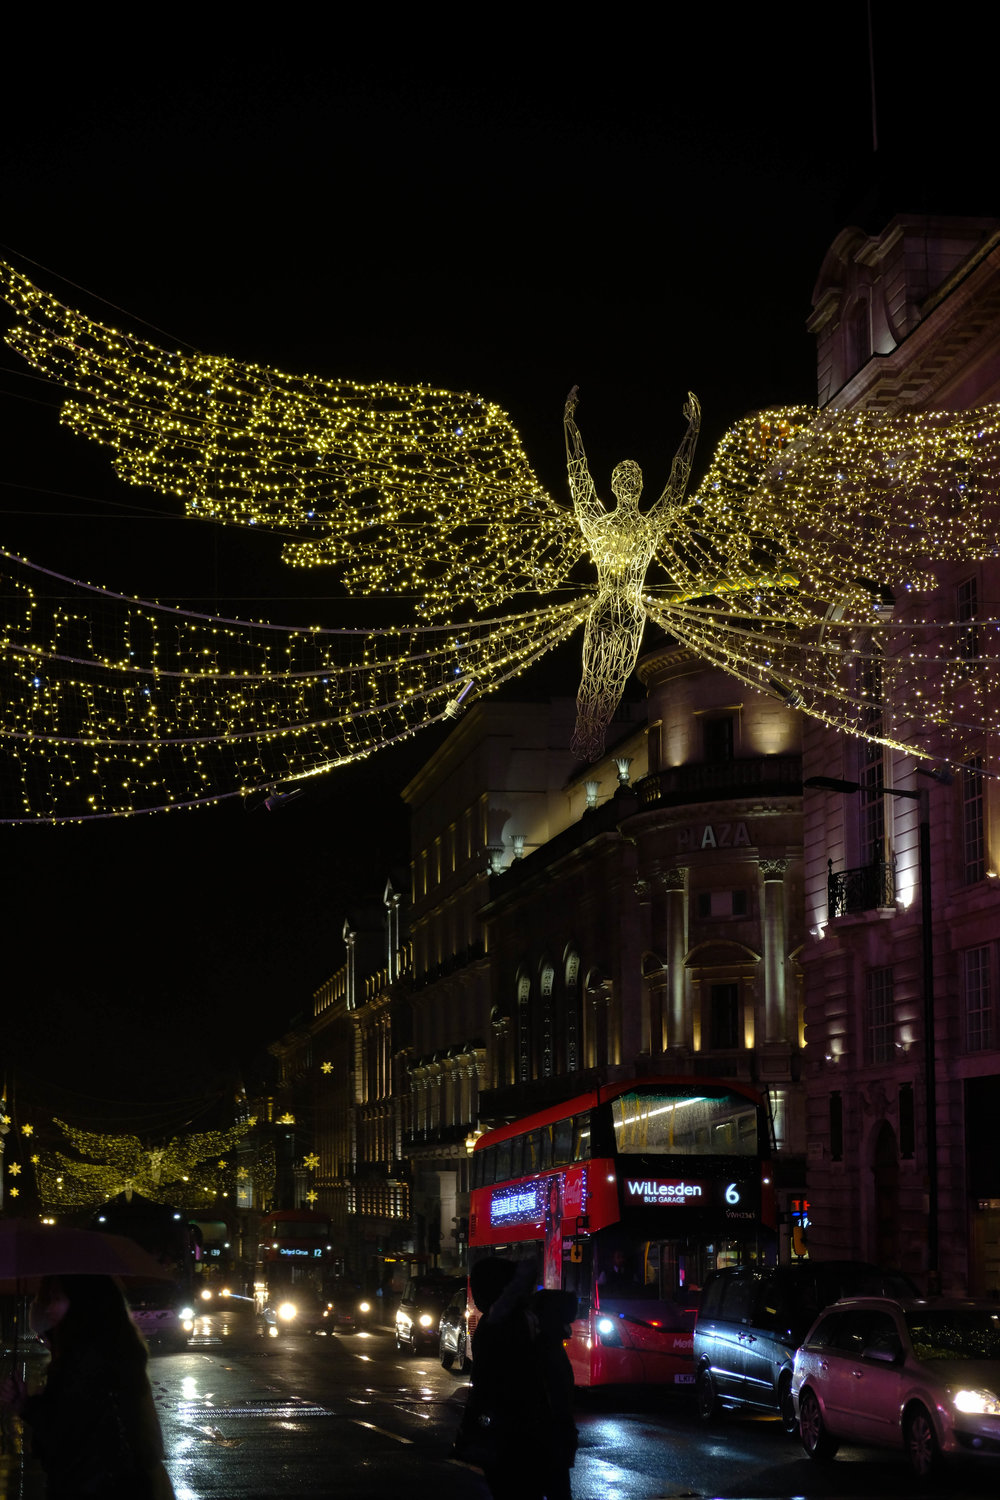 """<p style=""""font-family:brandon-grotesque;font-weight:500; font-size:11px; text-center:left; color:light grey;letter-spacing: 1px"""">DECEMBER 25, 2017 • ANGELS UP ABOVE • 📍 London, UK</p>"""